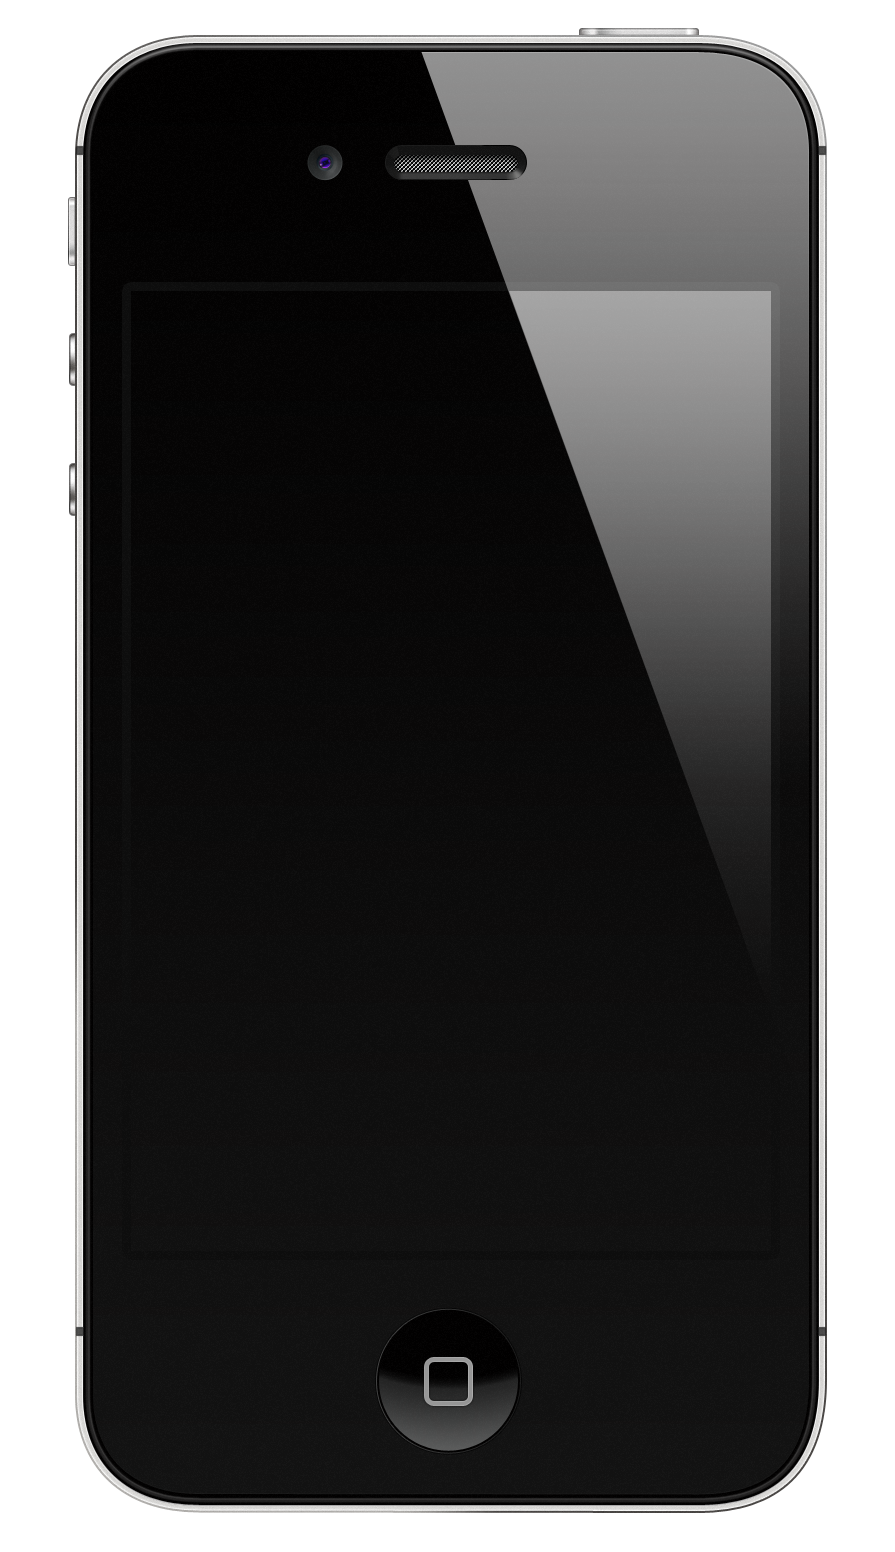 Iphone 7 blank screen png. Black s with highlight